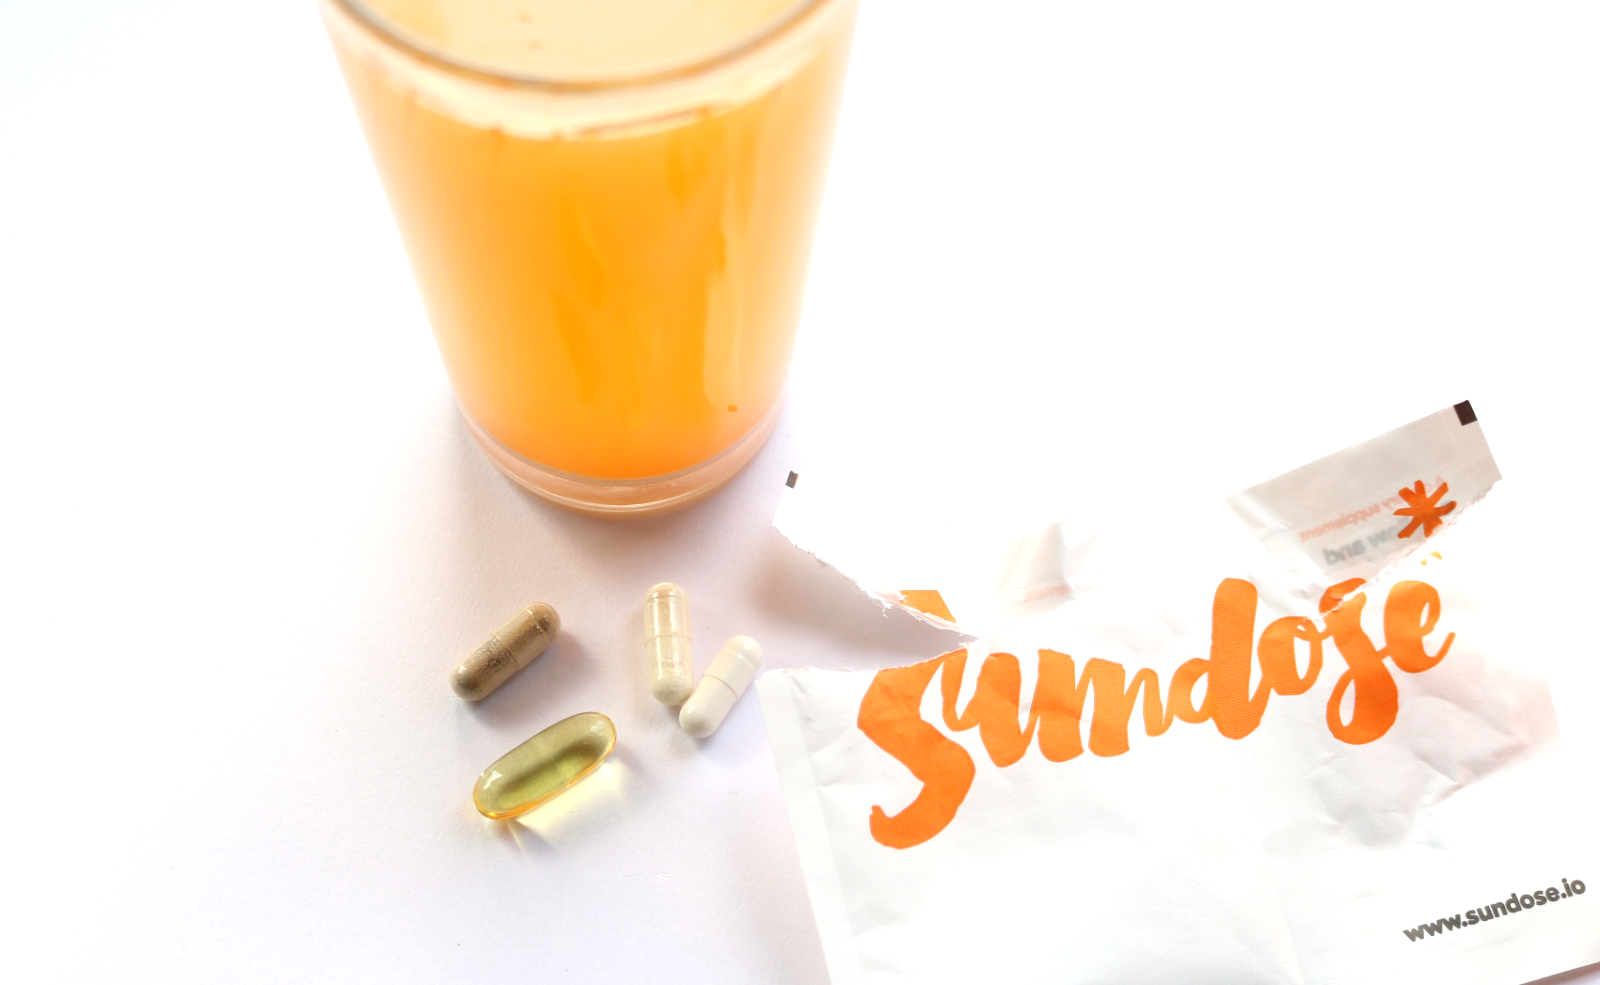 Health & Lifestyle: Sundose - Personalised Supplements review